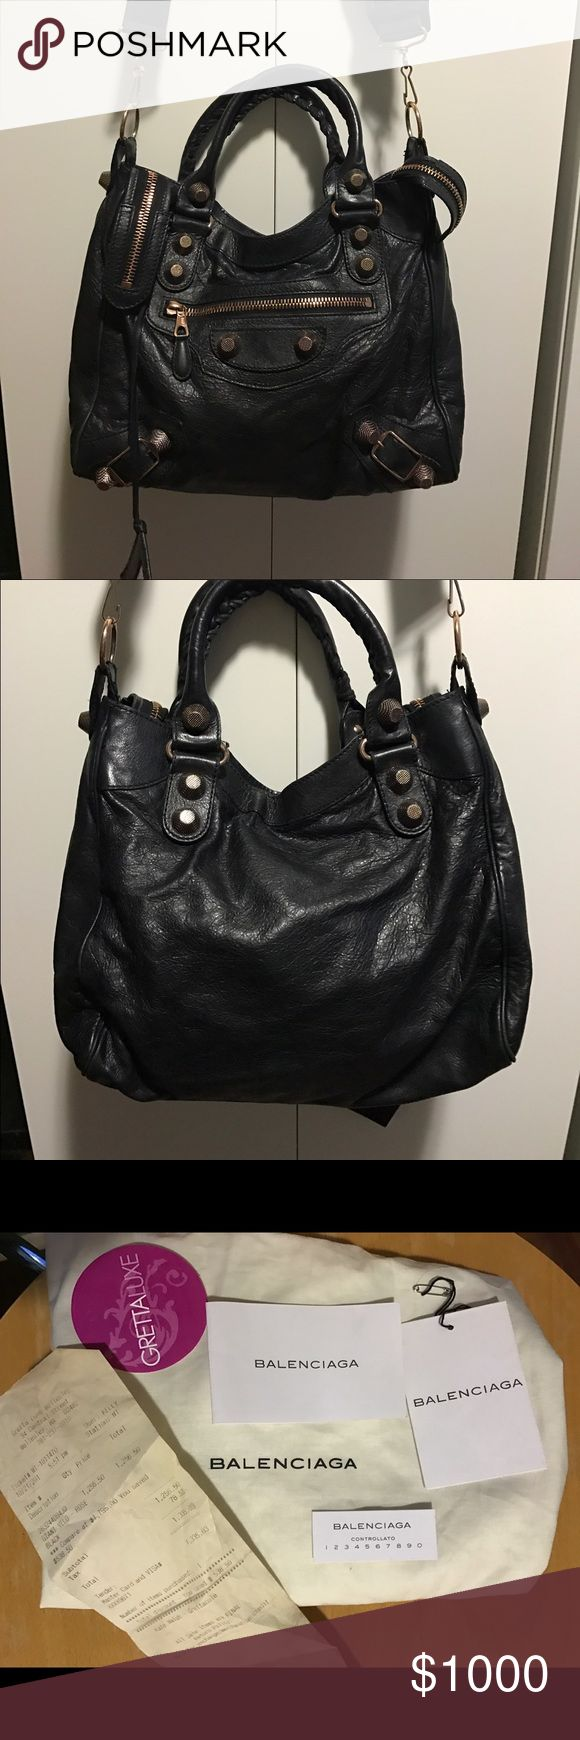 AUTH BALENCIAGA GIANT VELO BLACK ROSE GOLD BAG Gorgeous authentic balenciaga giant velo cross body bag in black with rose gold hardware. Fantastic used condition with no issues to speak of! Comes with dust bag, cards, and receipt from grettaluxe boutique in Boston. $1800+tax new! Please let me know if you want any other photos plus authentication is free through Poshmark! 13.5x10.5x4. Balenciaga Bags Shoulder Bags